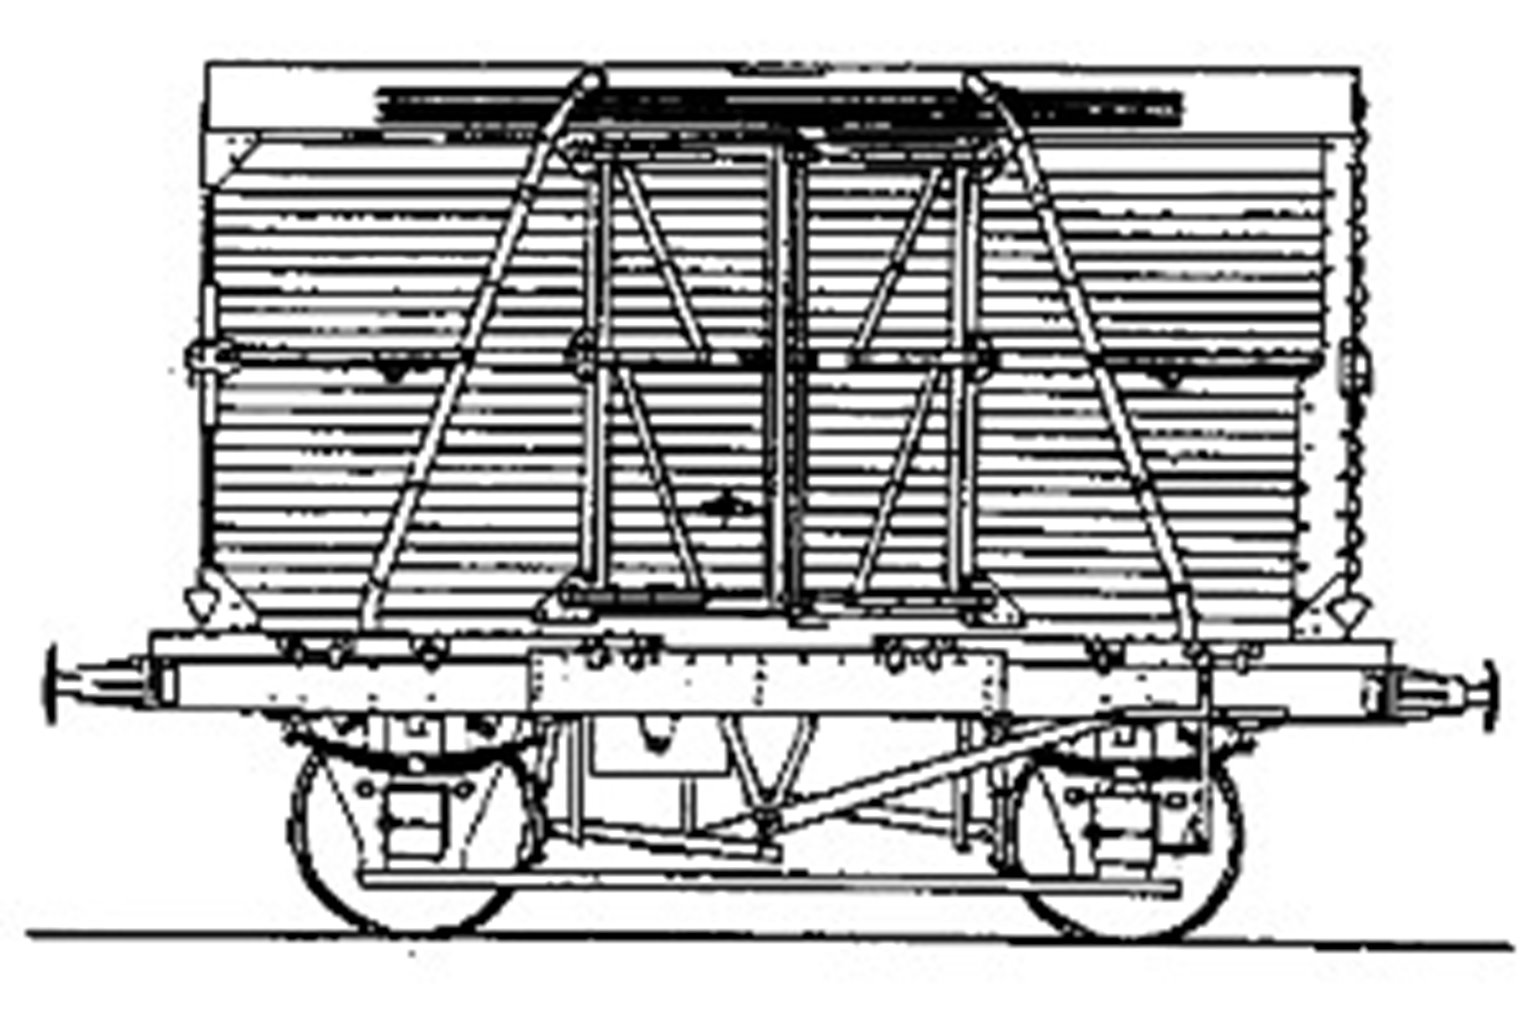 BR 'Conflat A' Container Wagon (Diag. 1/067) with BD Container Kit